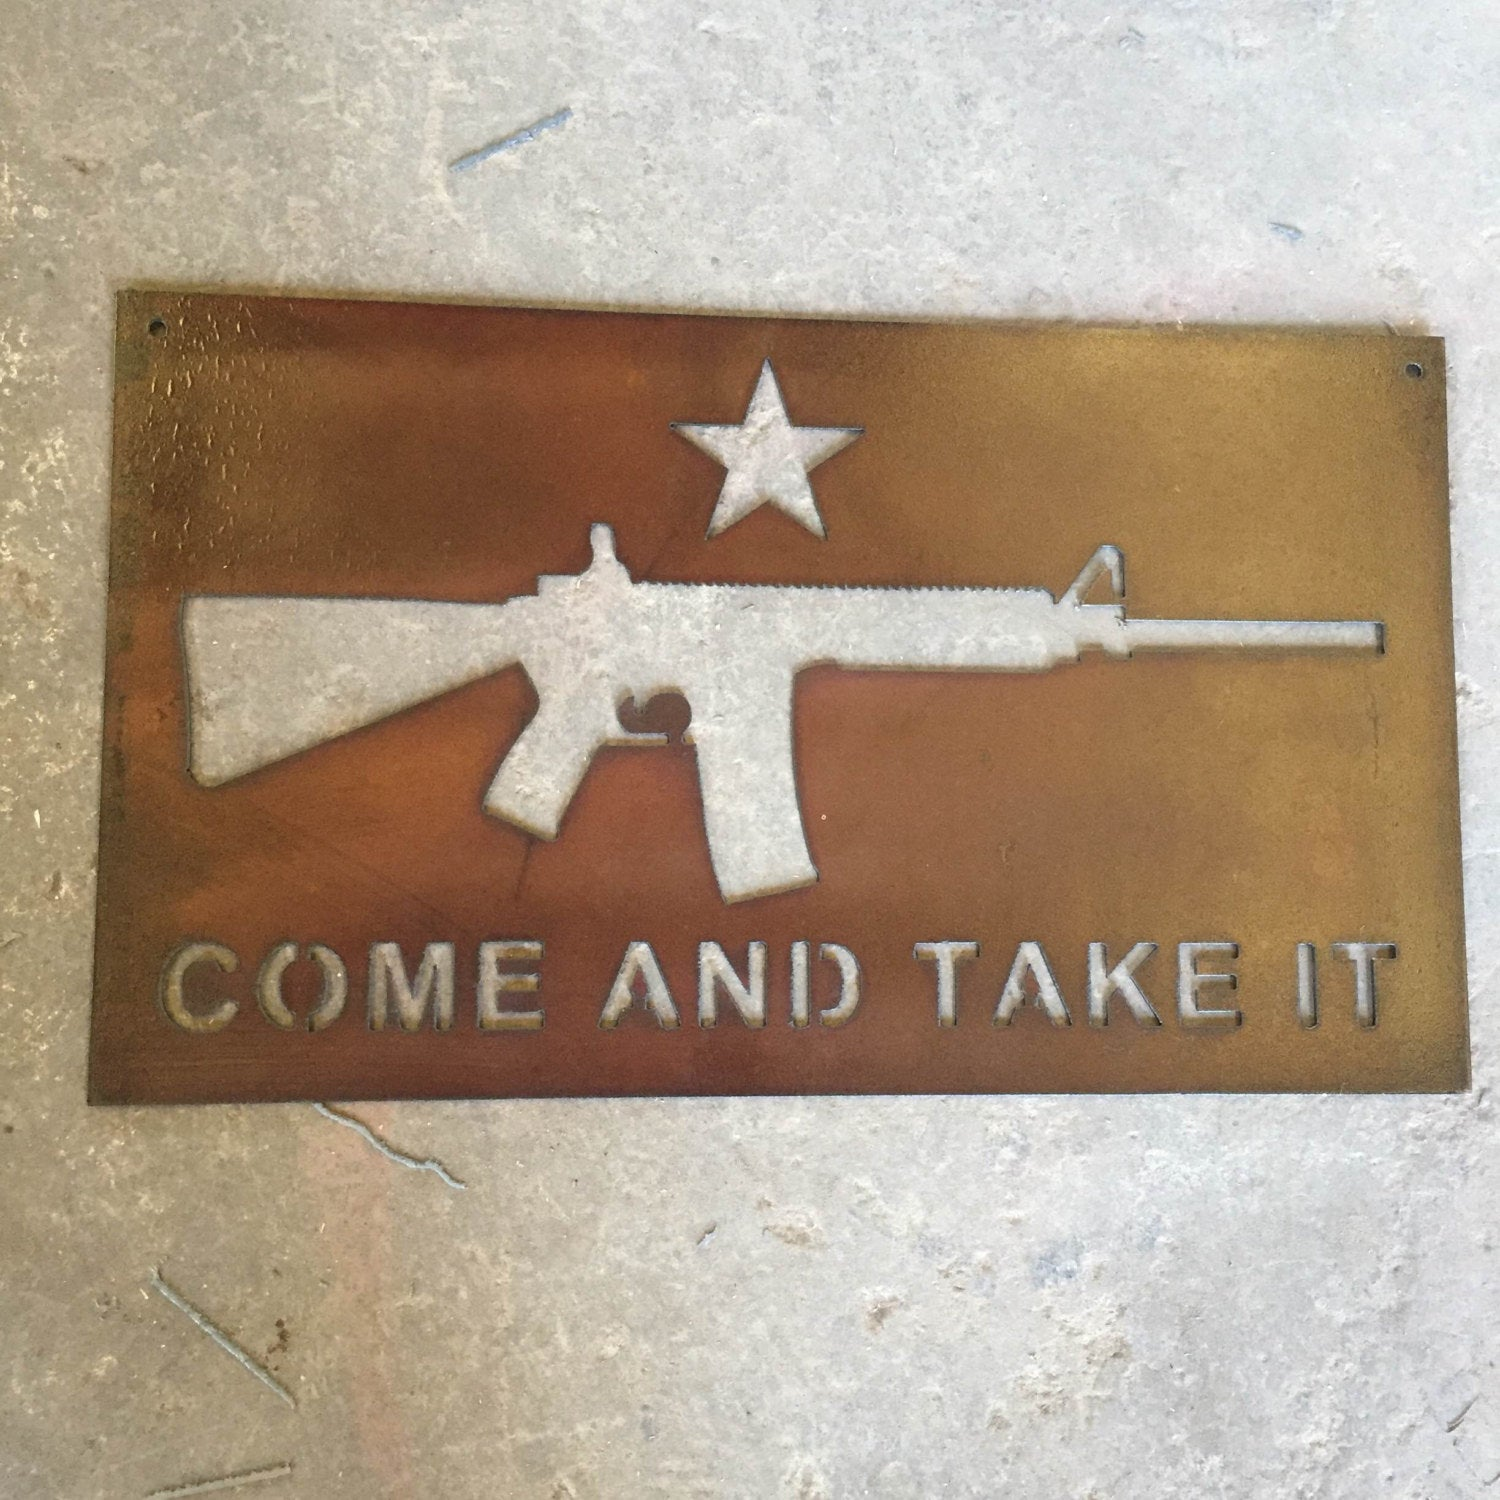 Come and Take It Metal Sign, gun gift, gifts for him, outdoor metal art, man cave, rustic home decor, 2nd amendment, military gifts